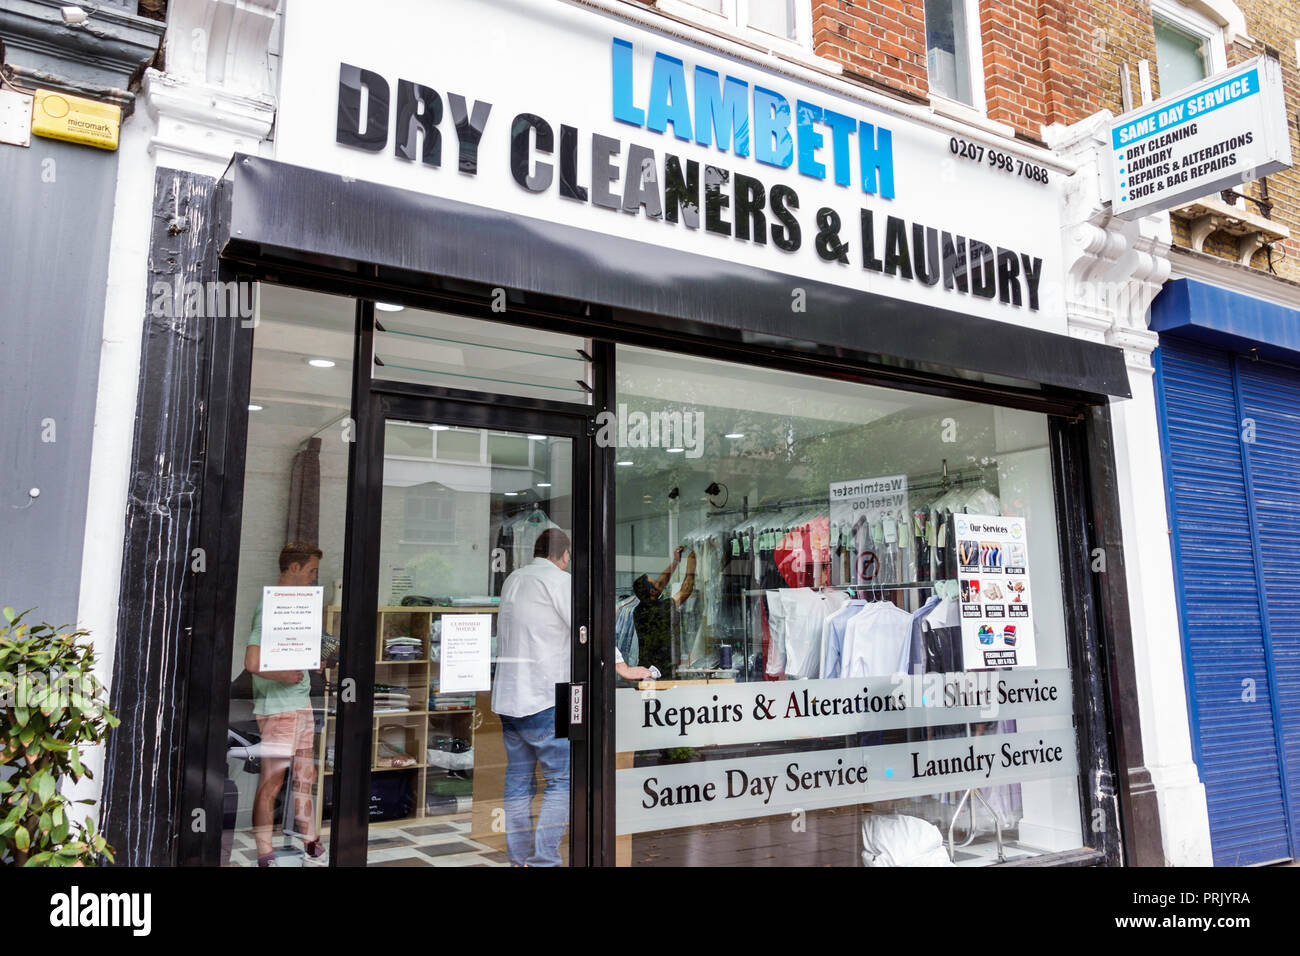 London England United Kingdom Great Britain Lambeth North Kennington Road Lambeth Dry Cleaners and Laundry exterior storefront repairs alterations same day service signage window - Stock Image